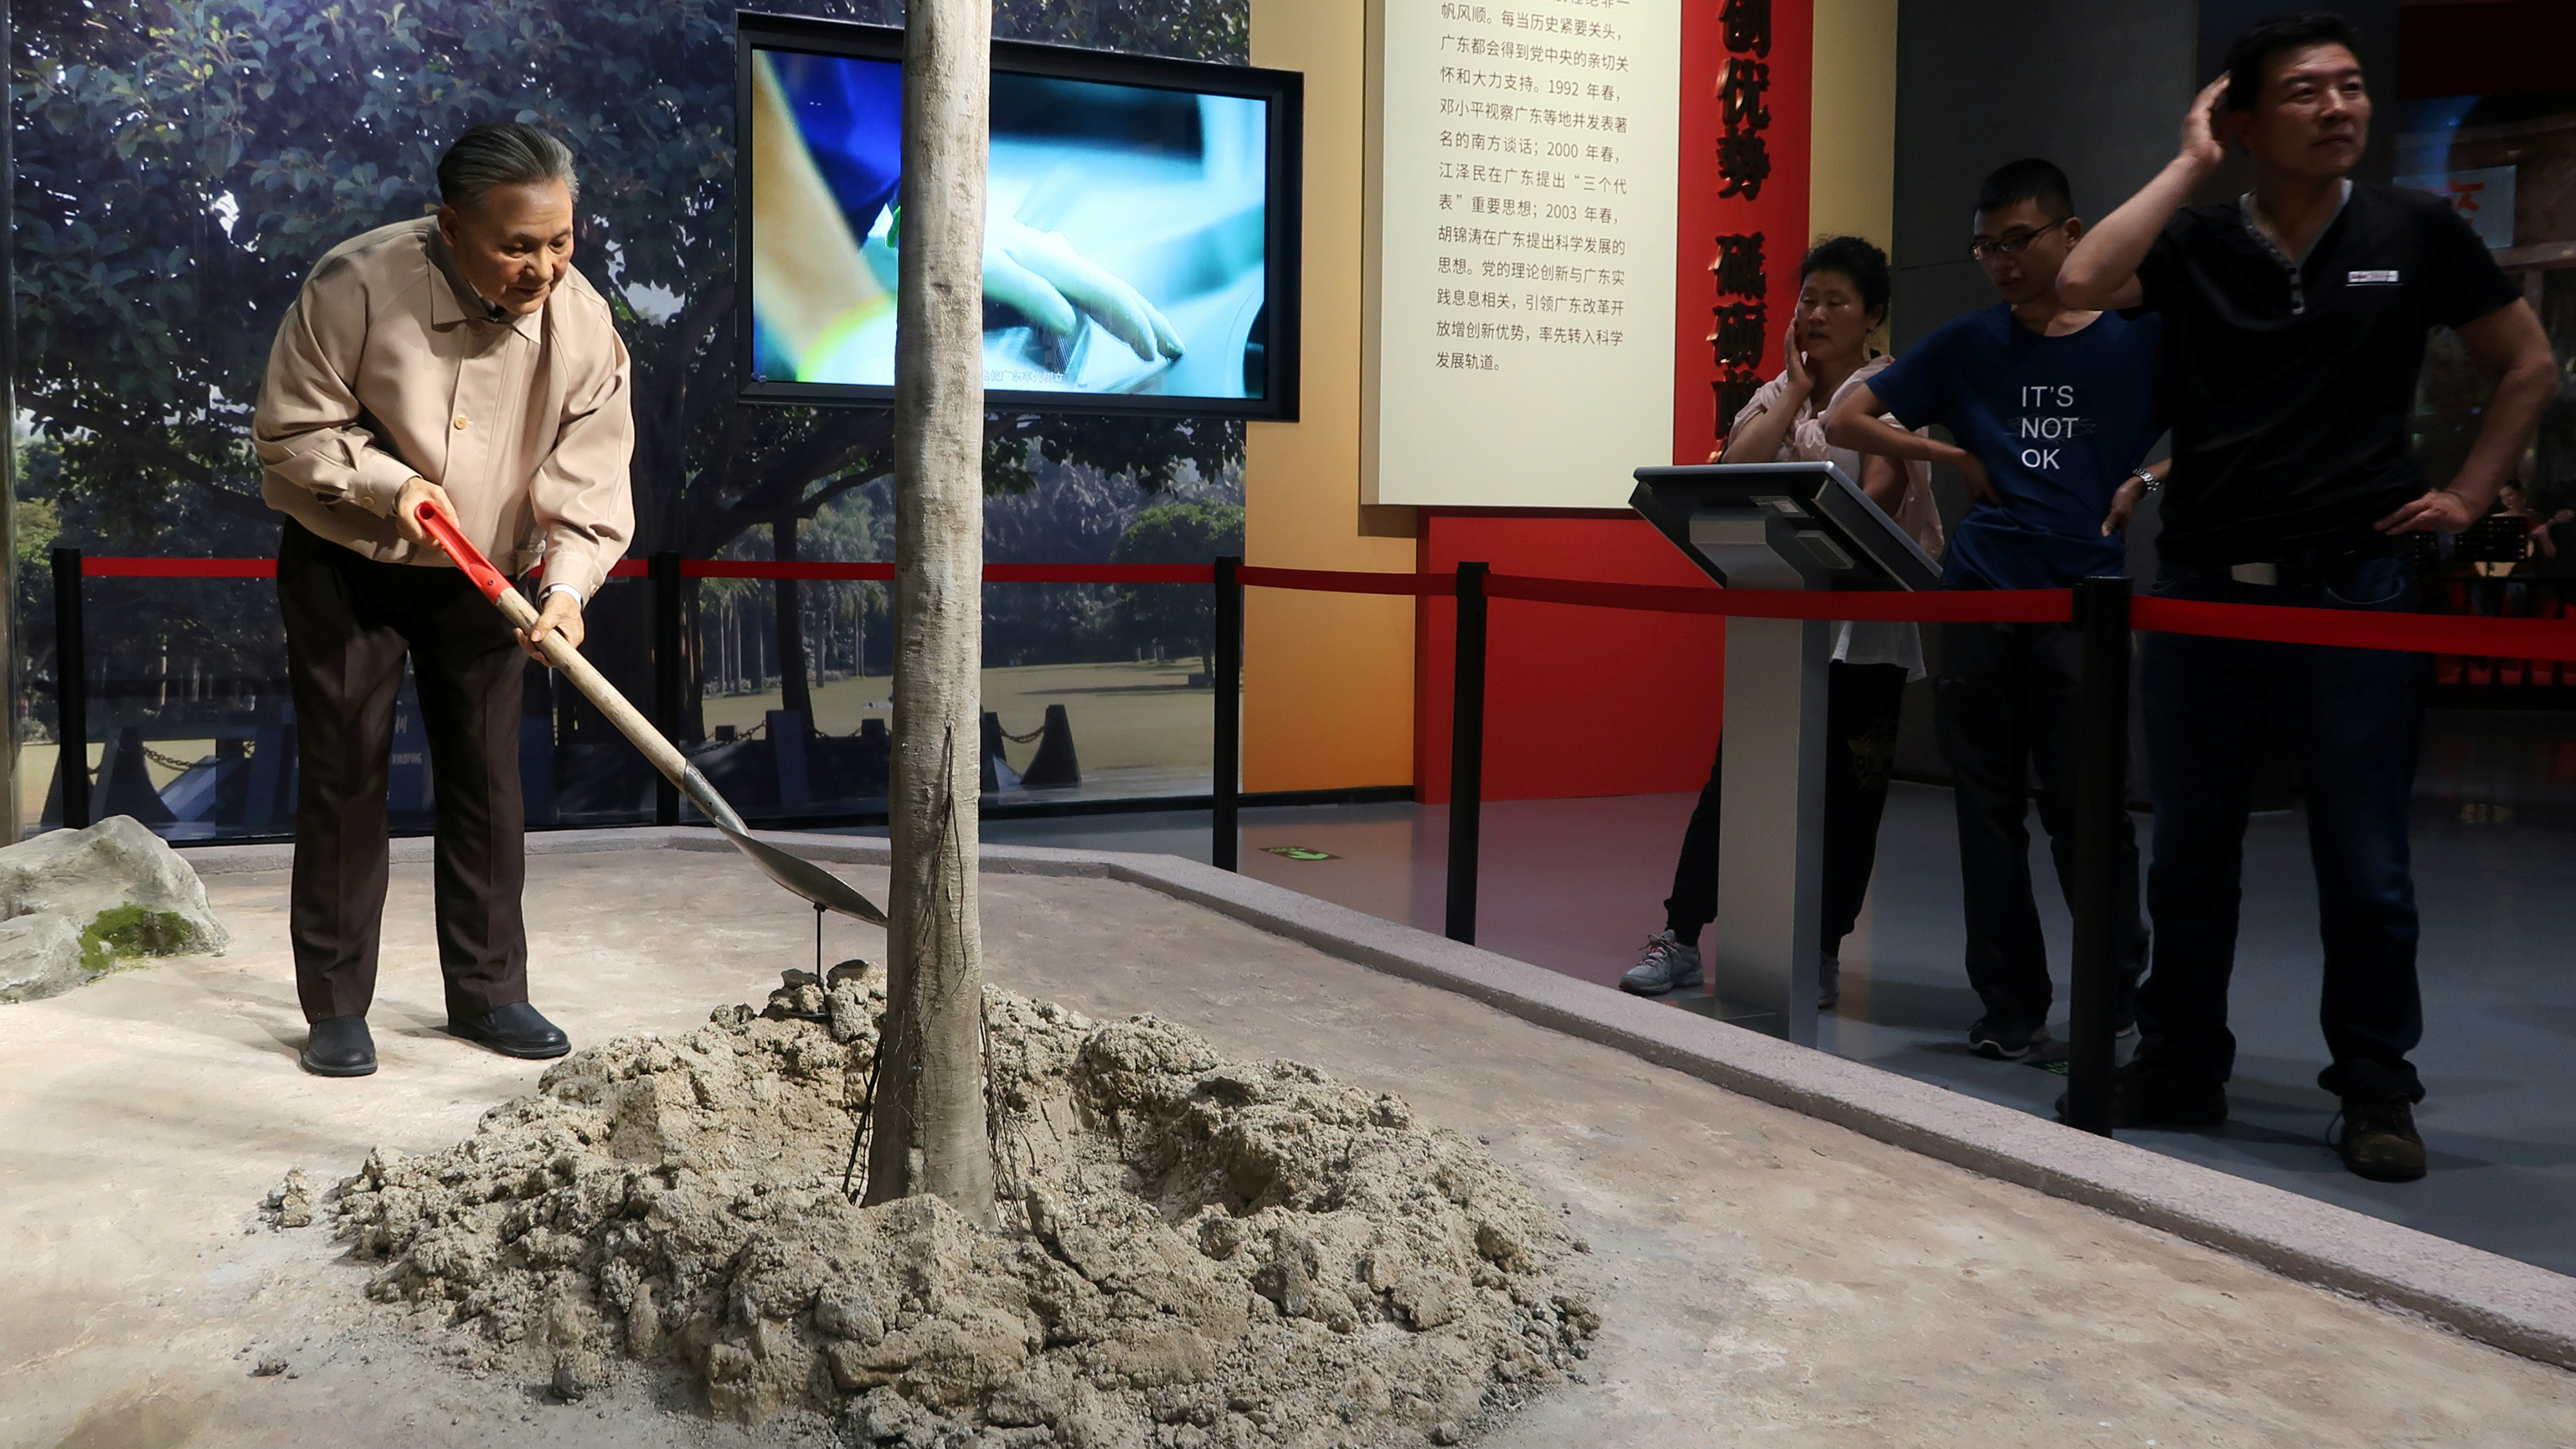 Visitors look at an exhibit showing the former Chinese leader Deng Xiaoping planting a tree.